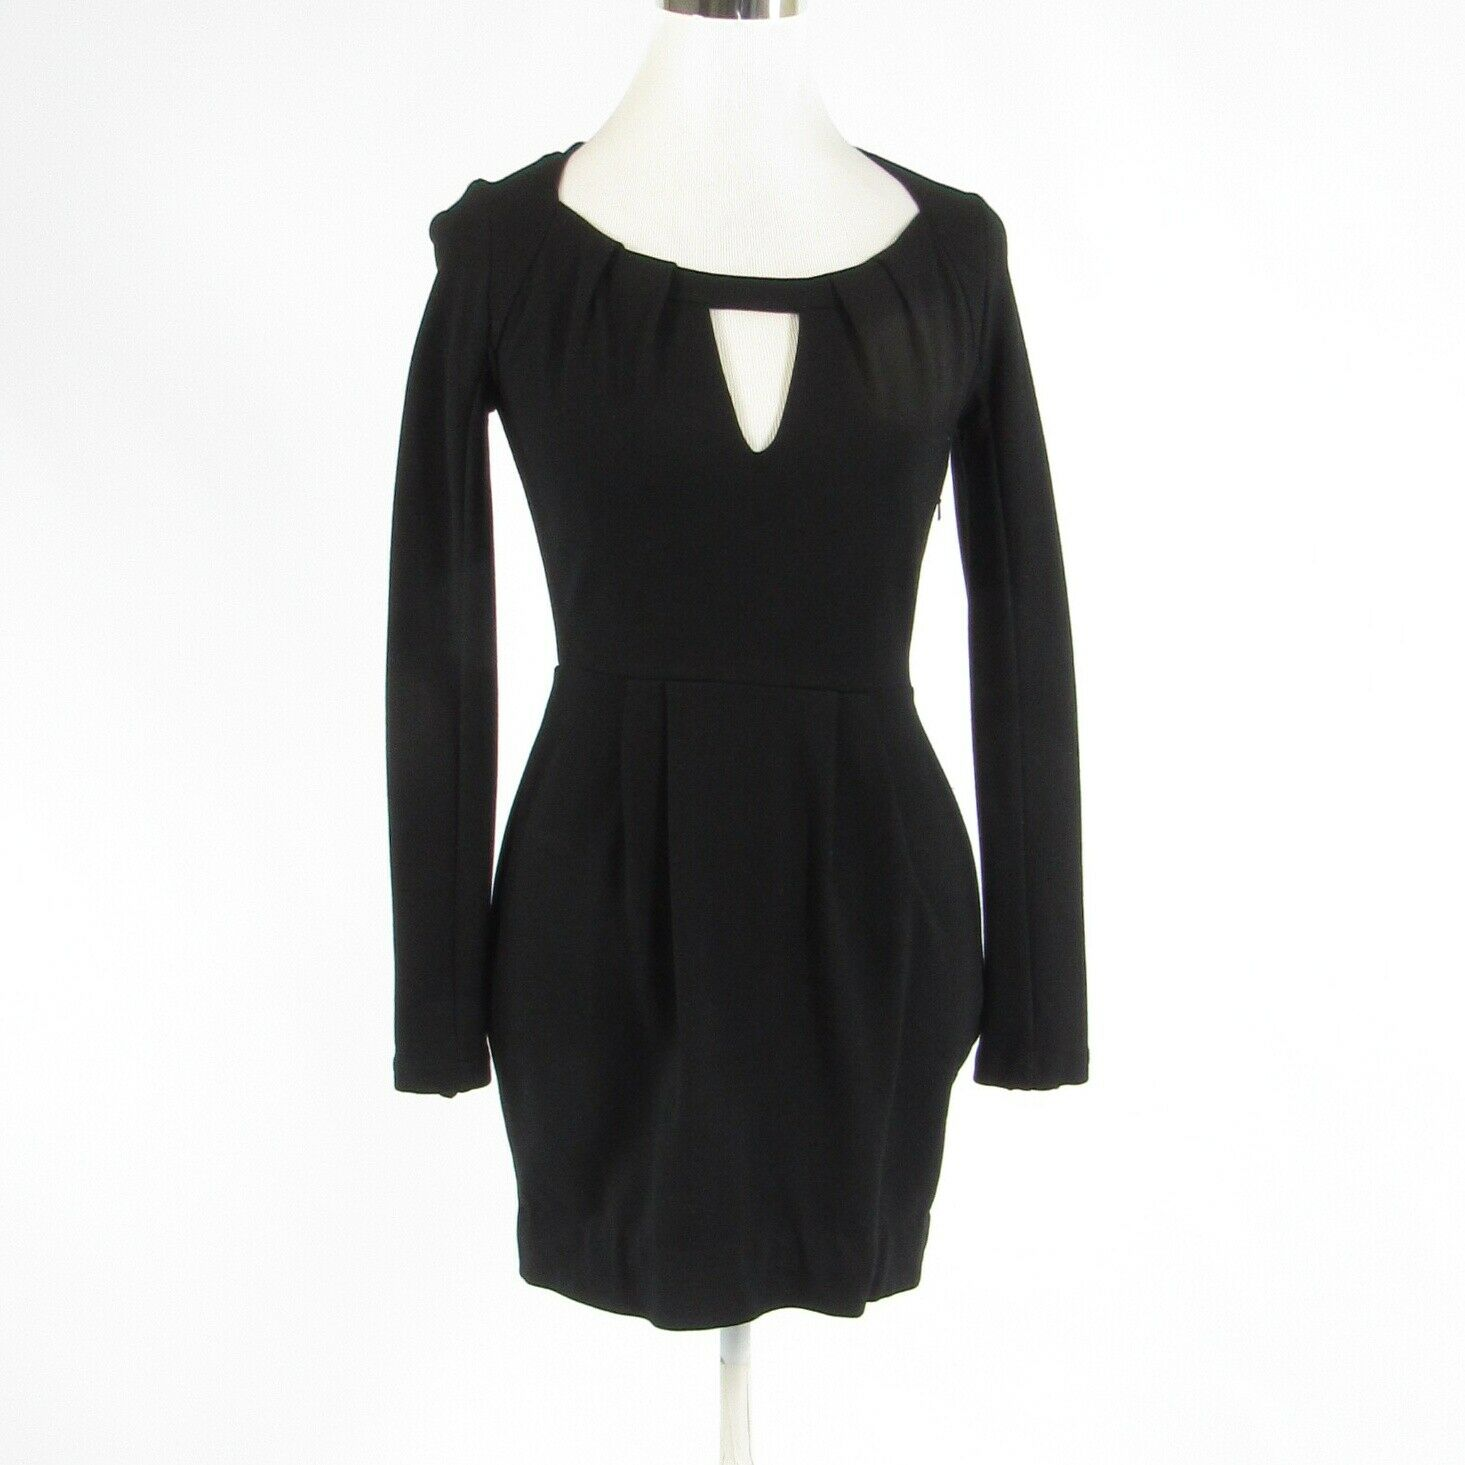 Black cotton blend FRENCH CONNECTION stretch long sleeve sheath dress 4 36-Newish